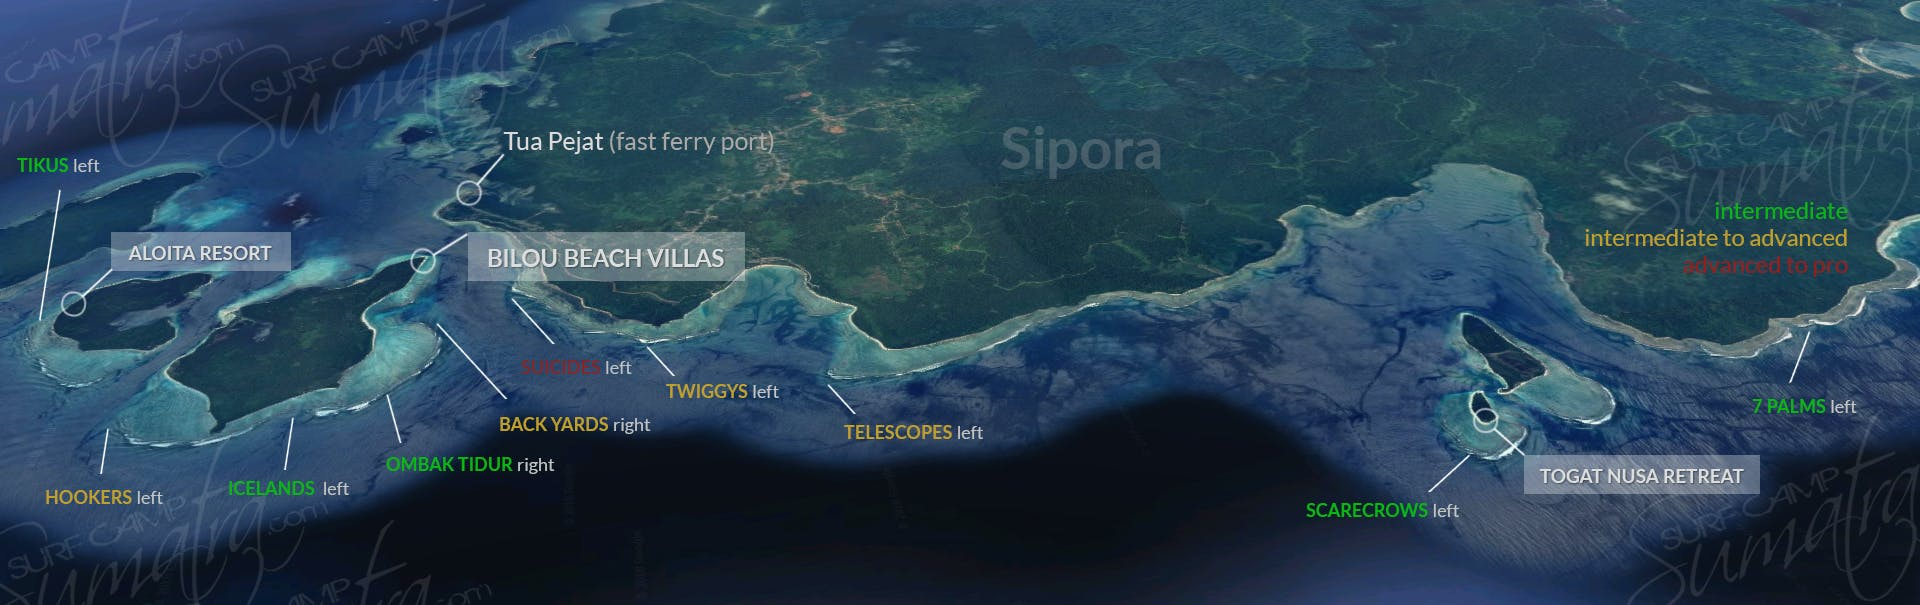 Sipora surf map